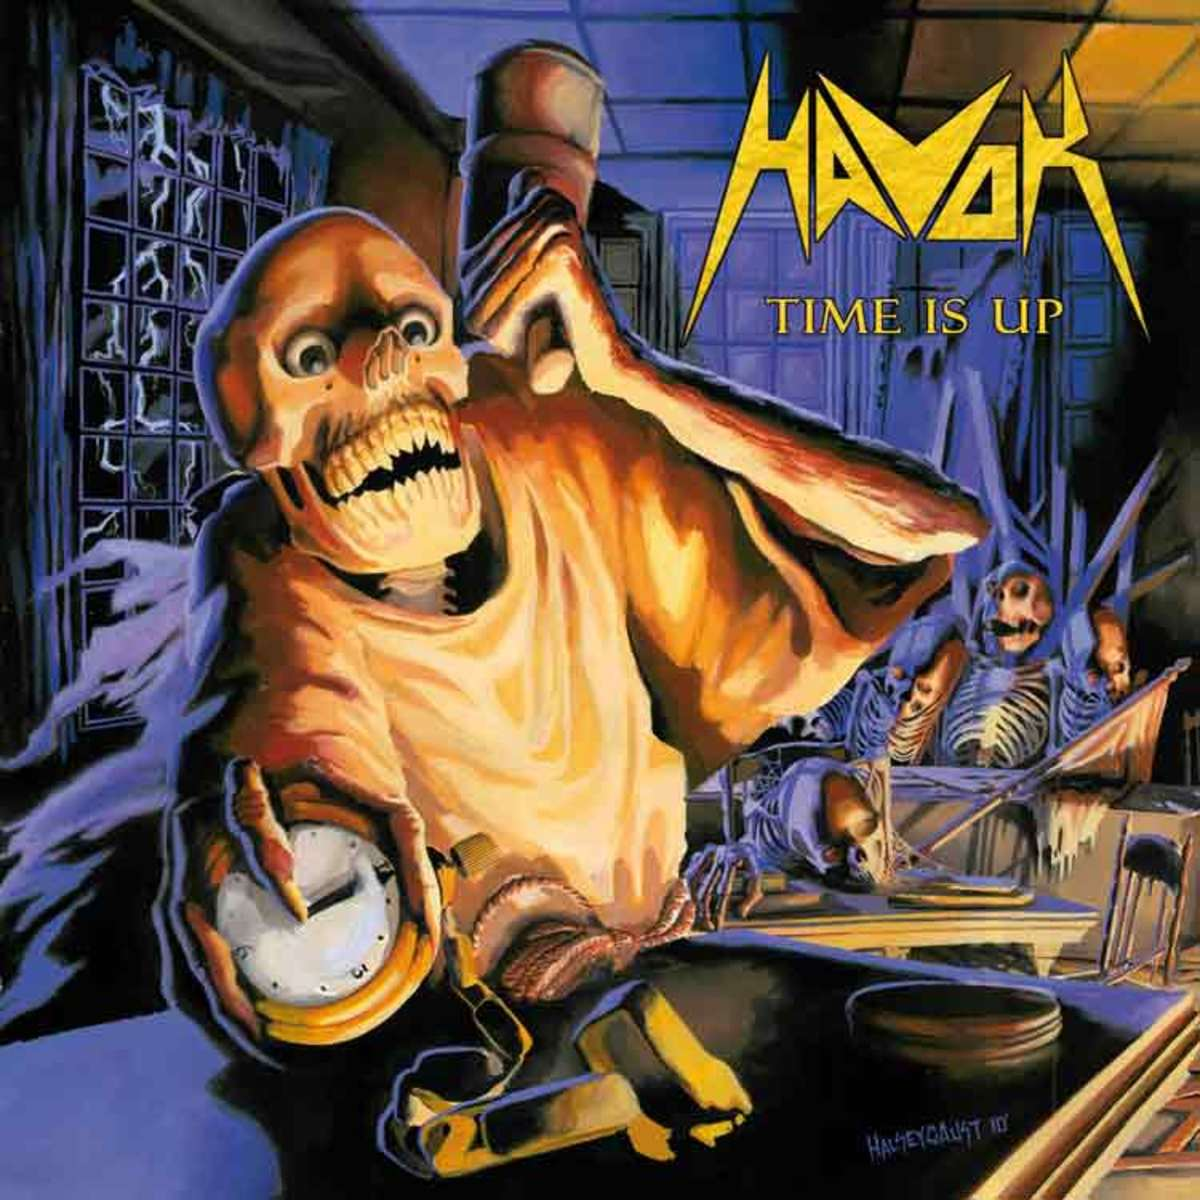 A Review of the Album Time Is up by Denver Colorado Thrash Metal Band Havok